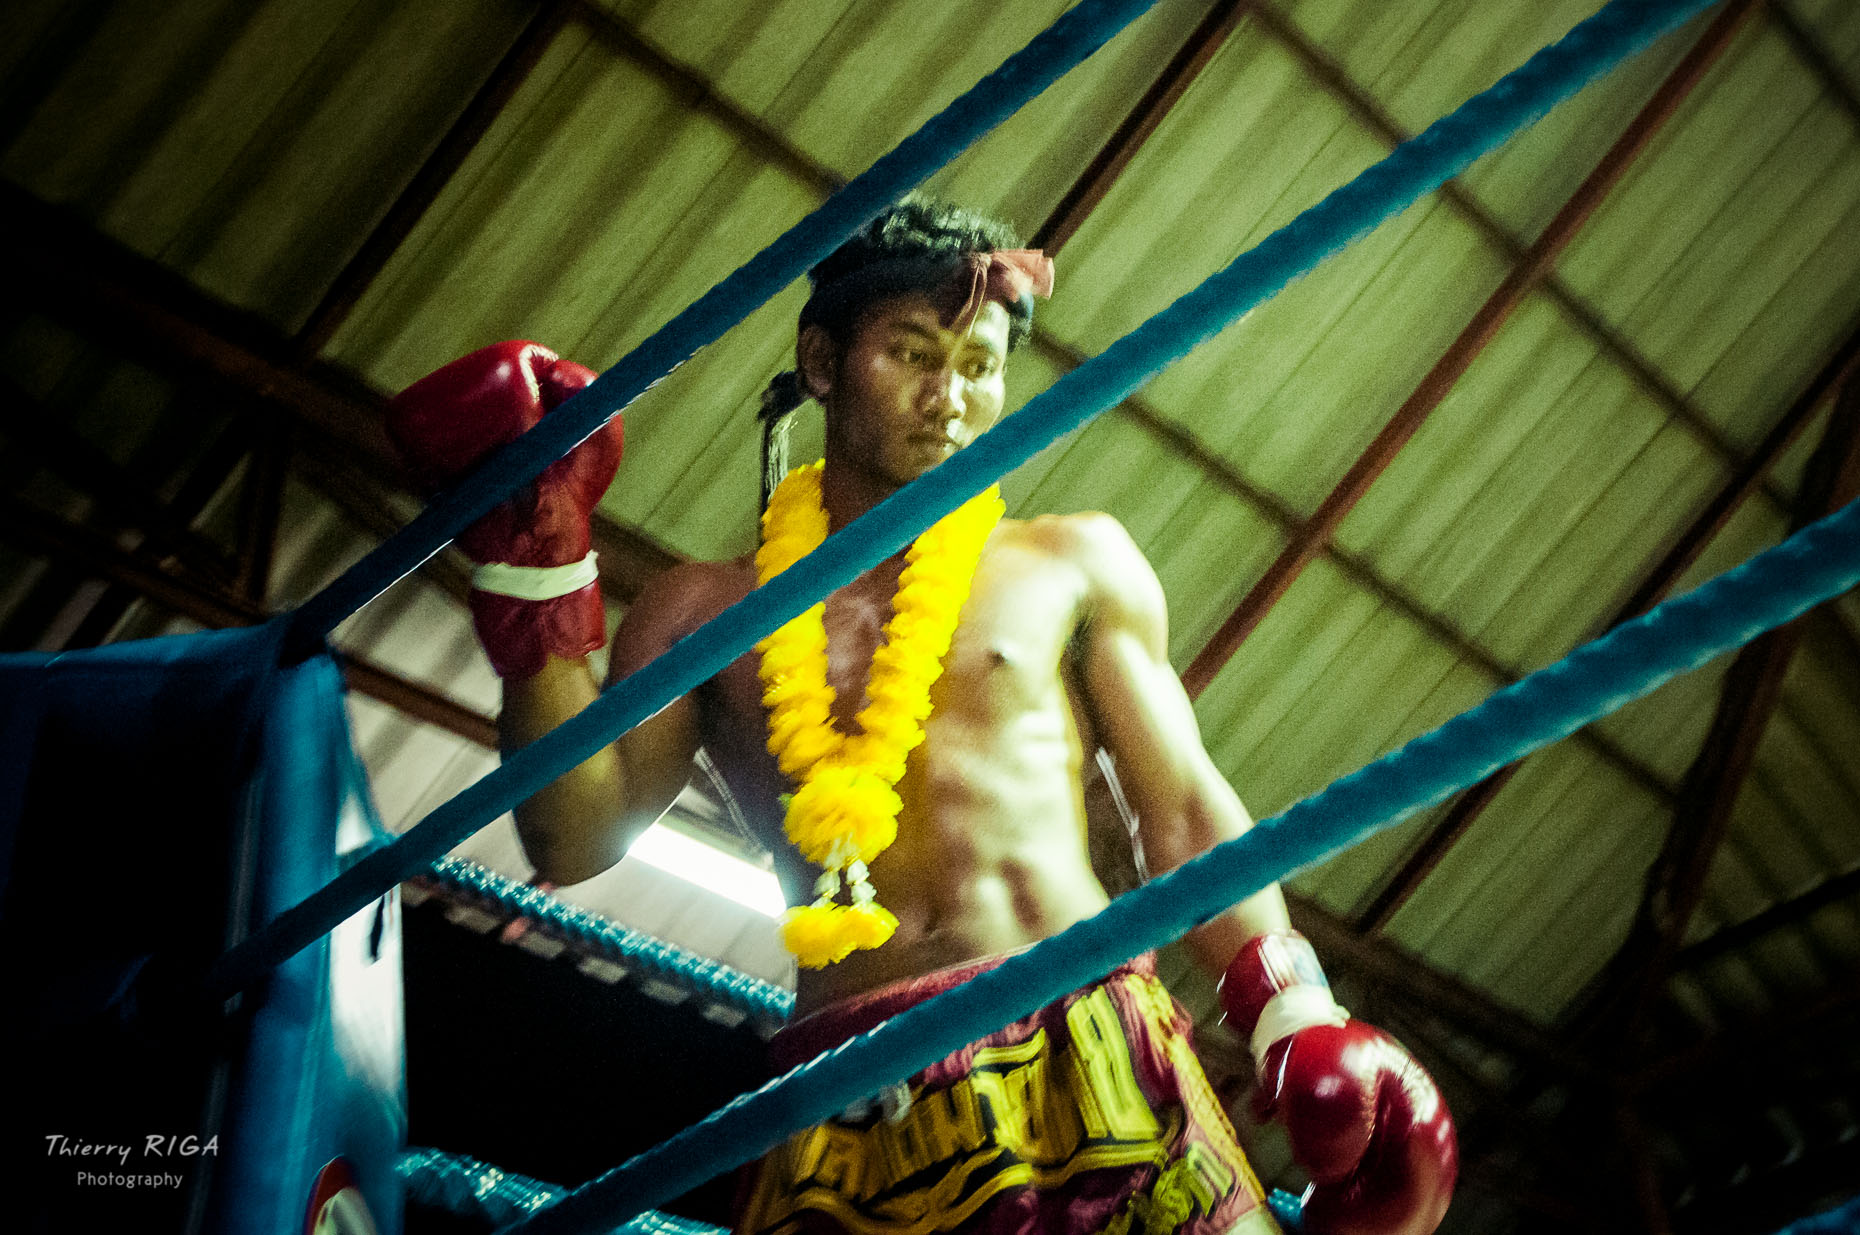 Muay_Thai_boxing_Thailand_insight_5580_Thierry_Riga.jpg